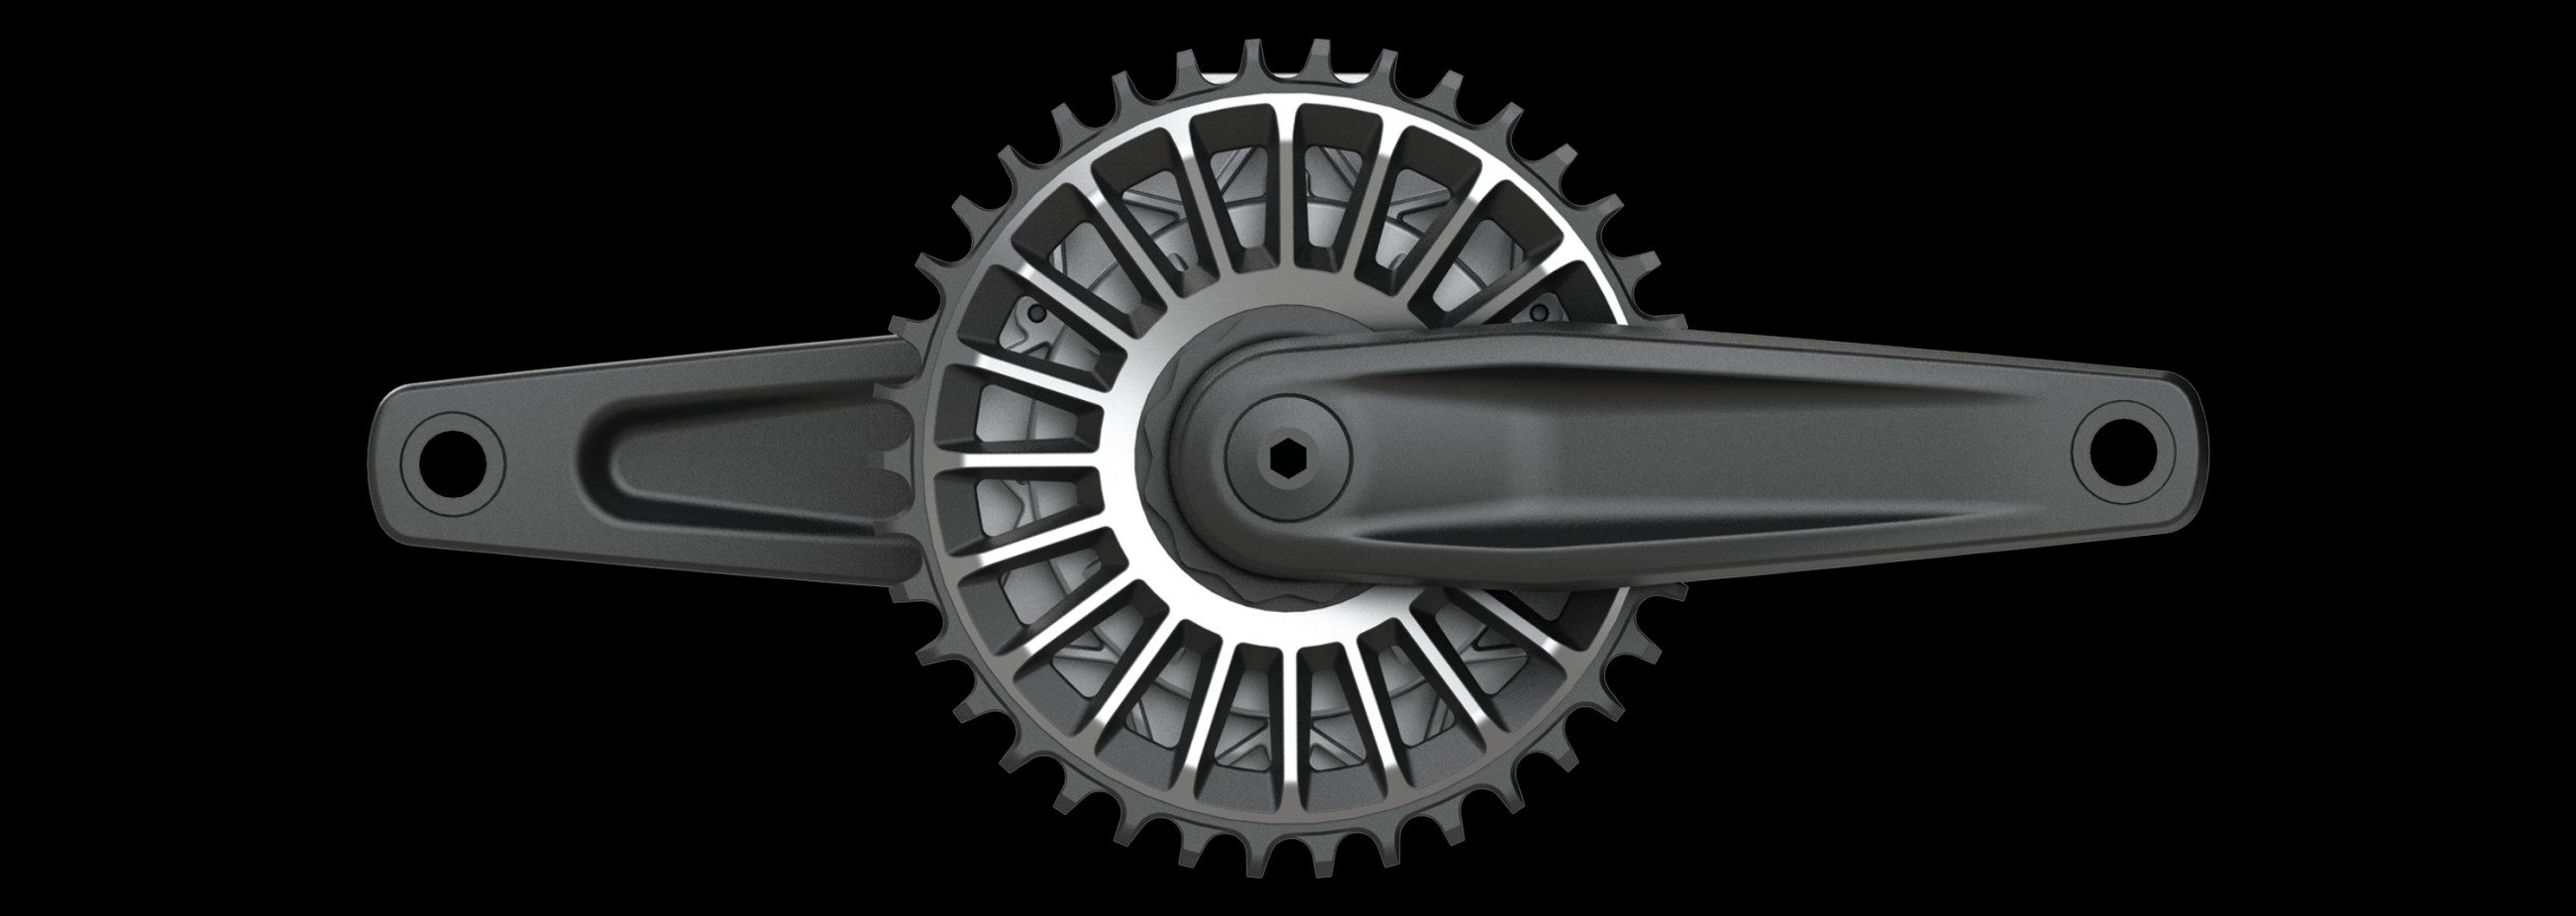 The Haibike chain wheel